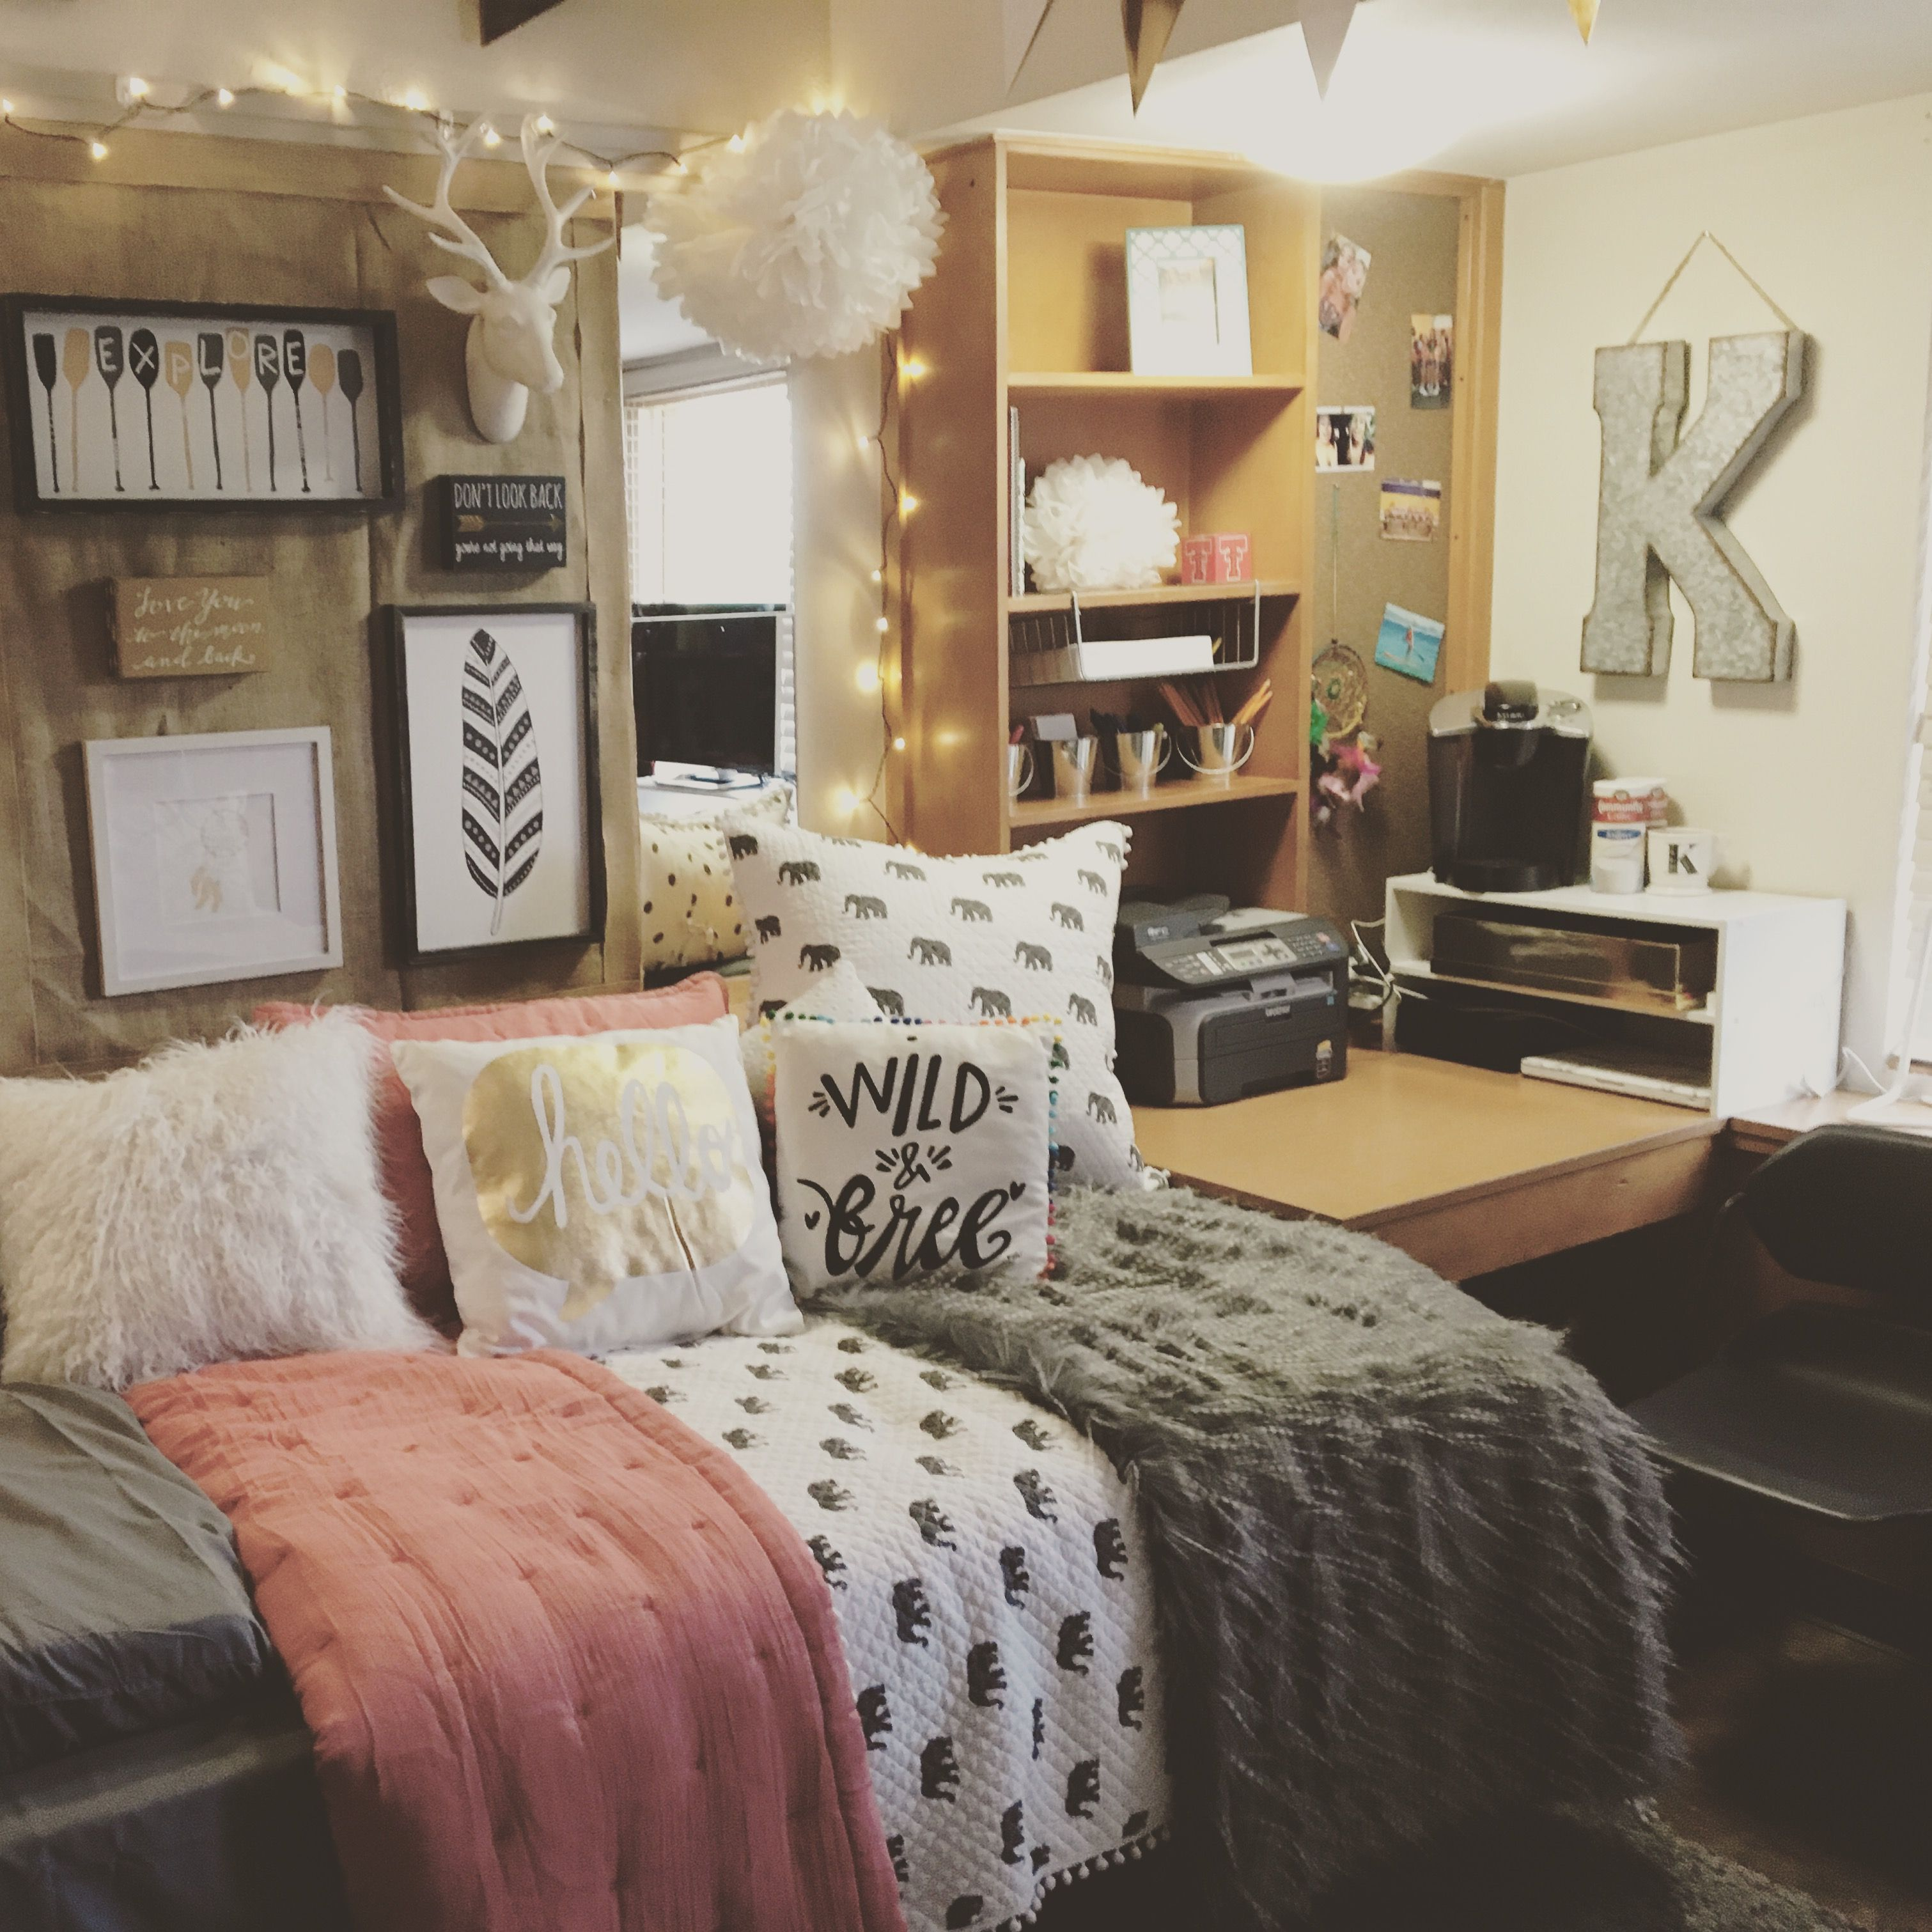 Daughters Dorm Room At Texas Tech University Clement Hall